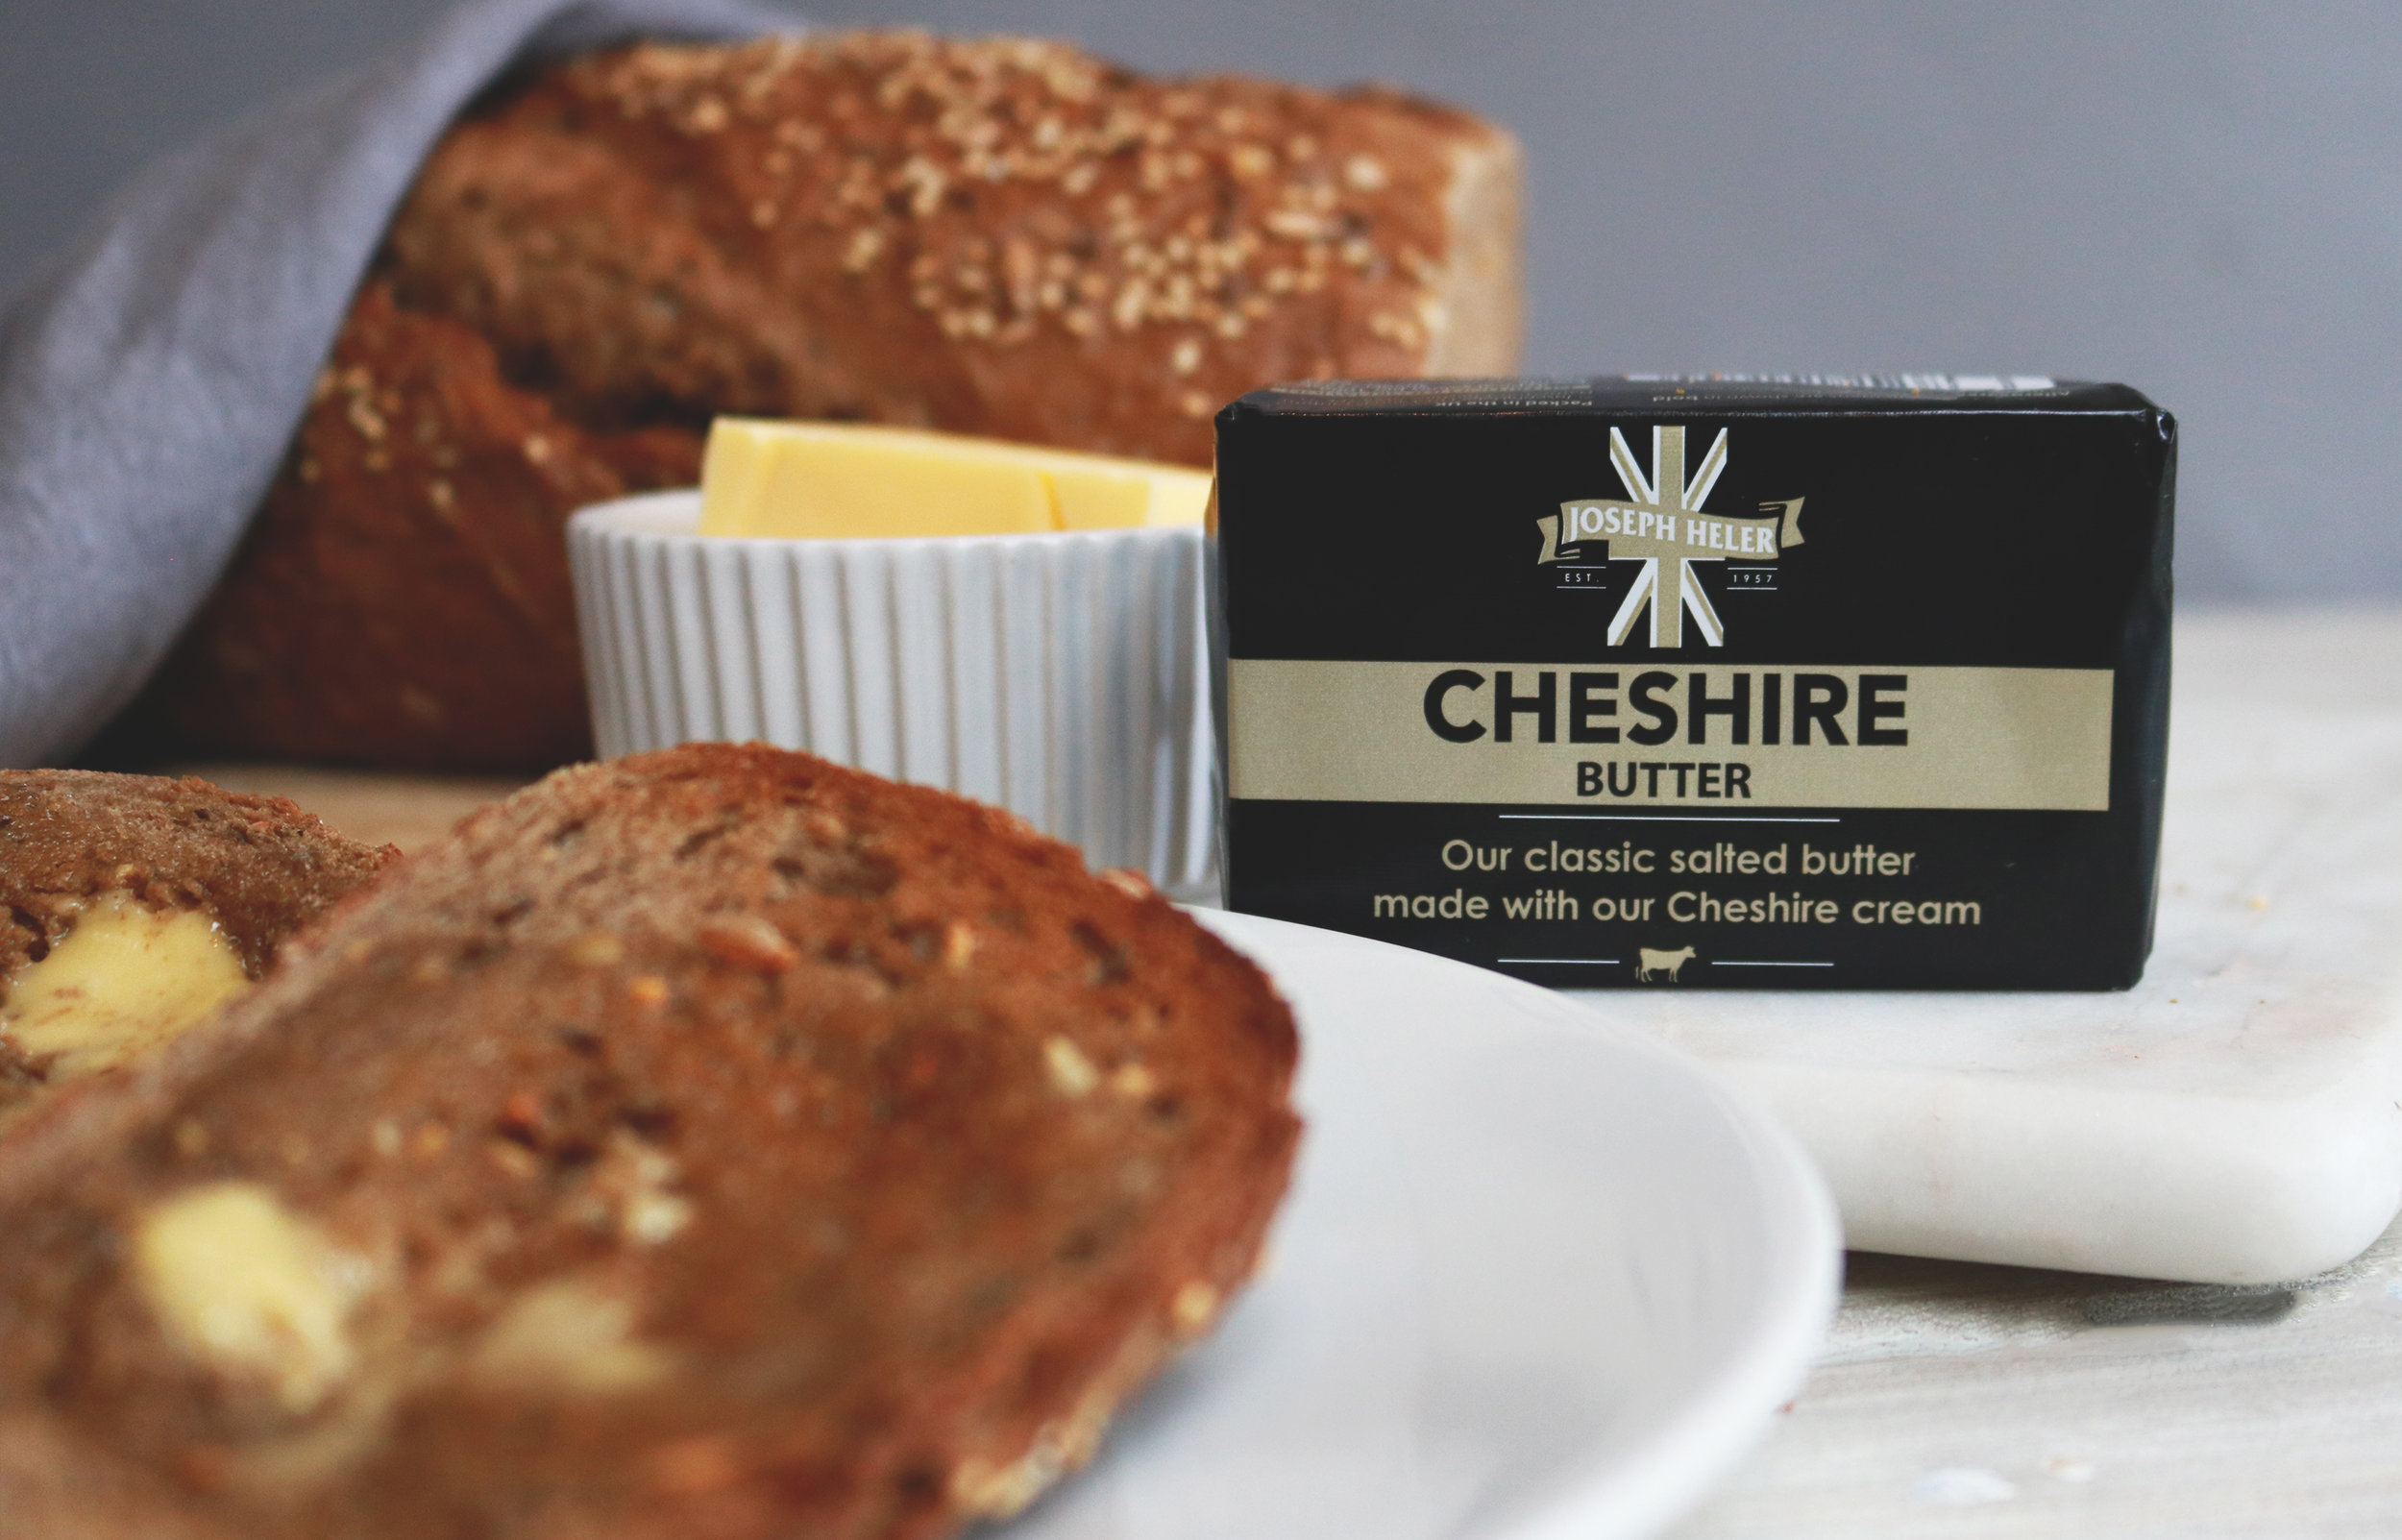 Real local butter - Our salted butter made with our Cheshire cream